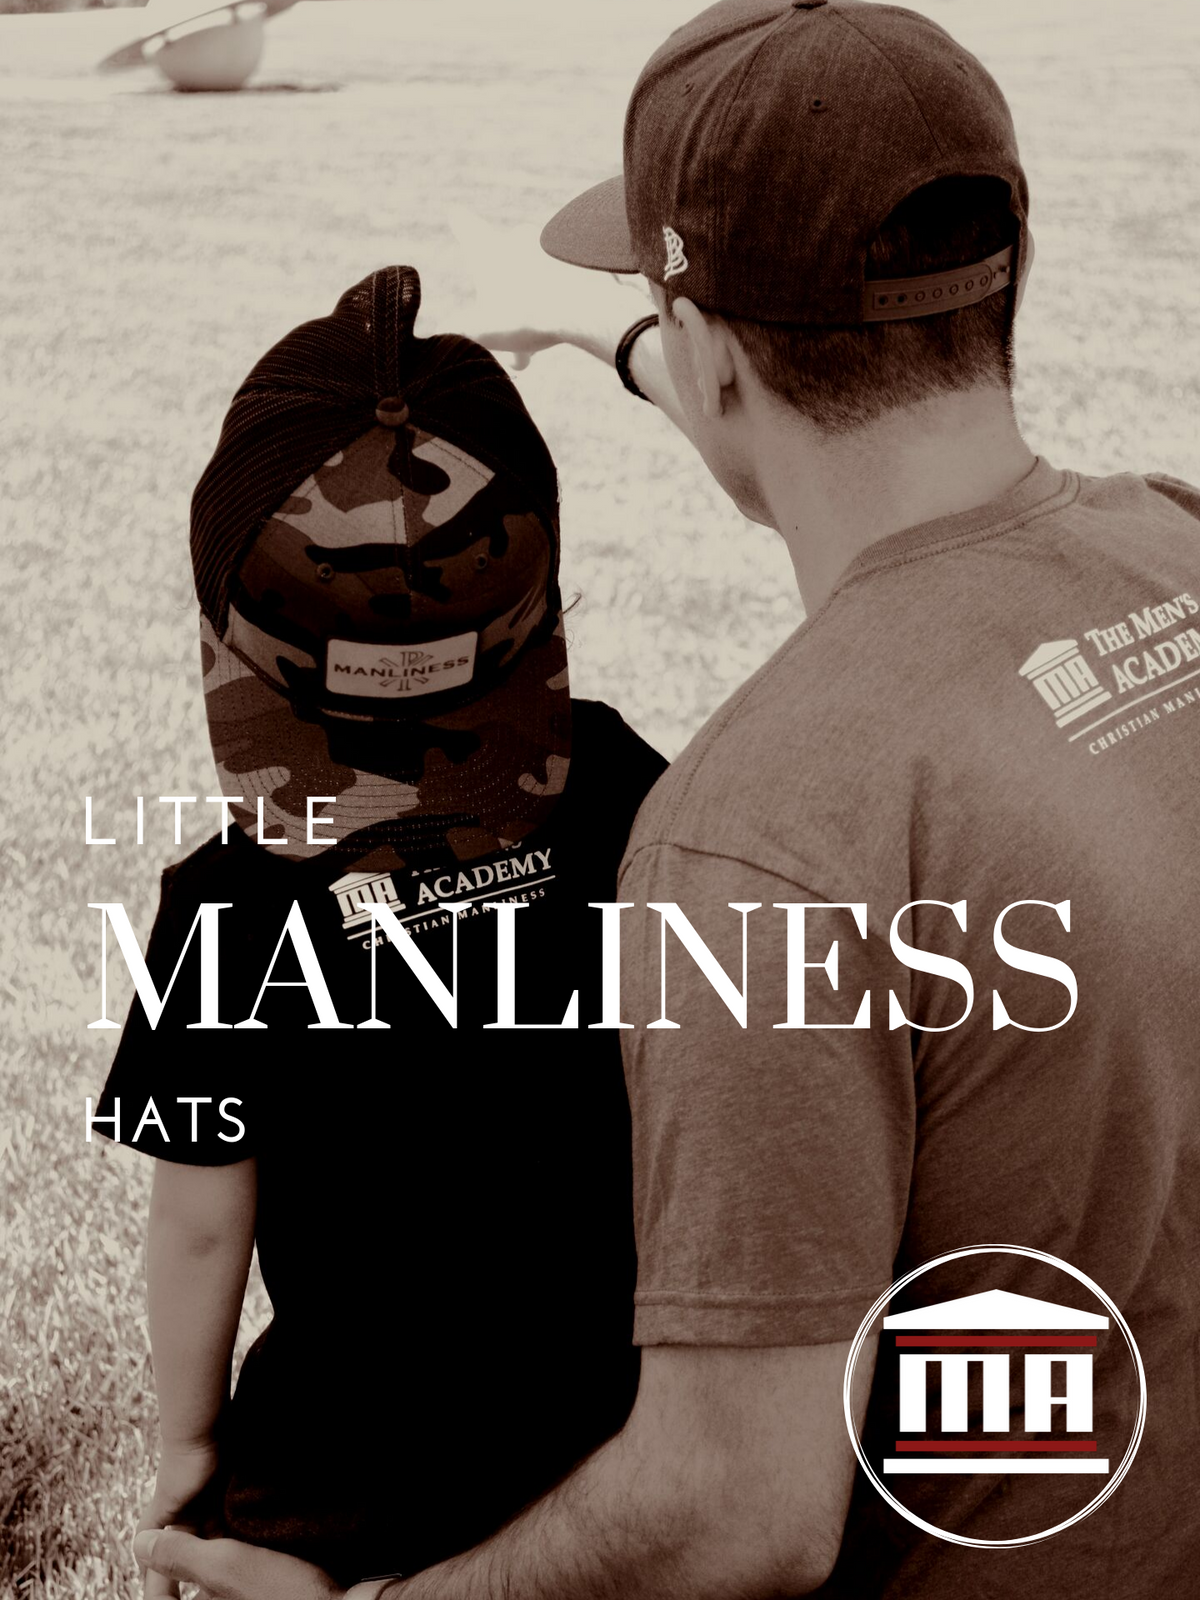 LITTLE MANLINESS HATS